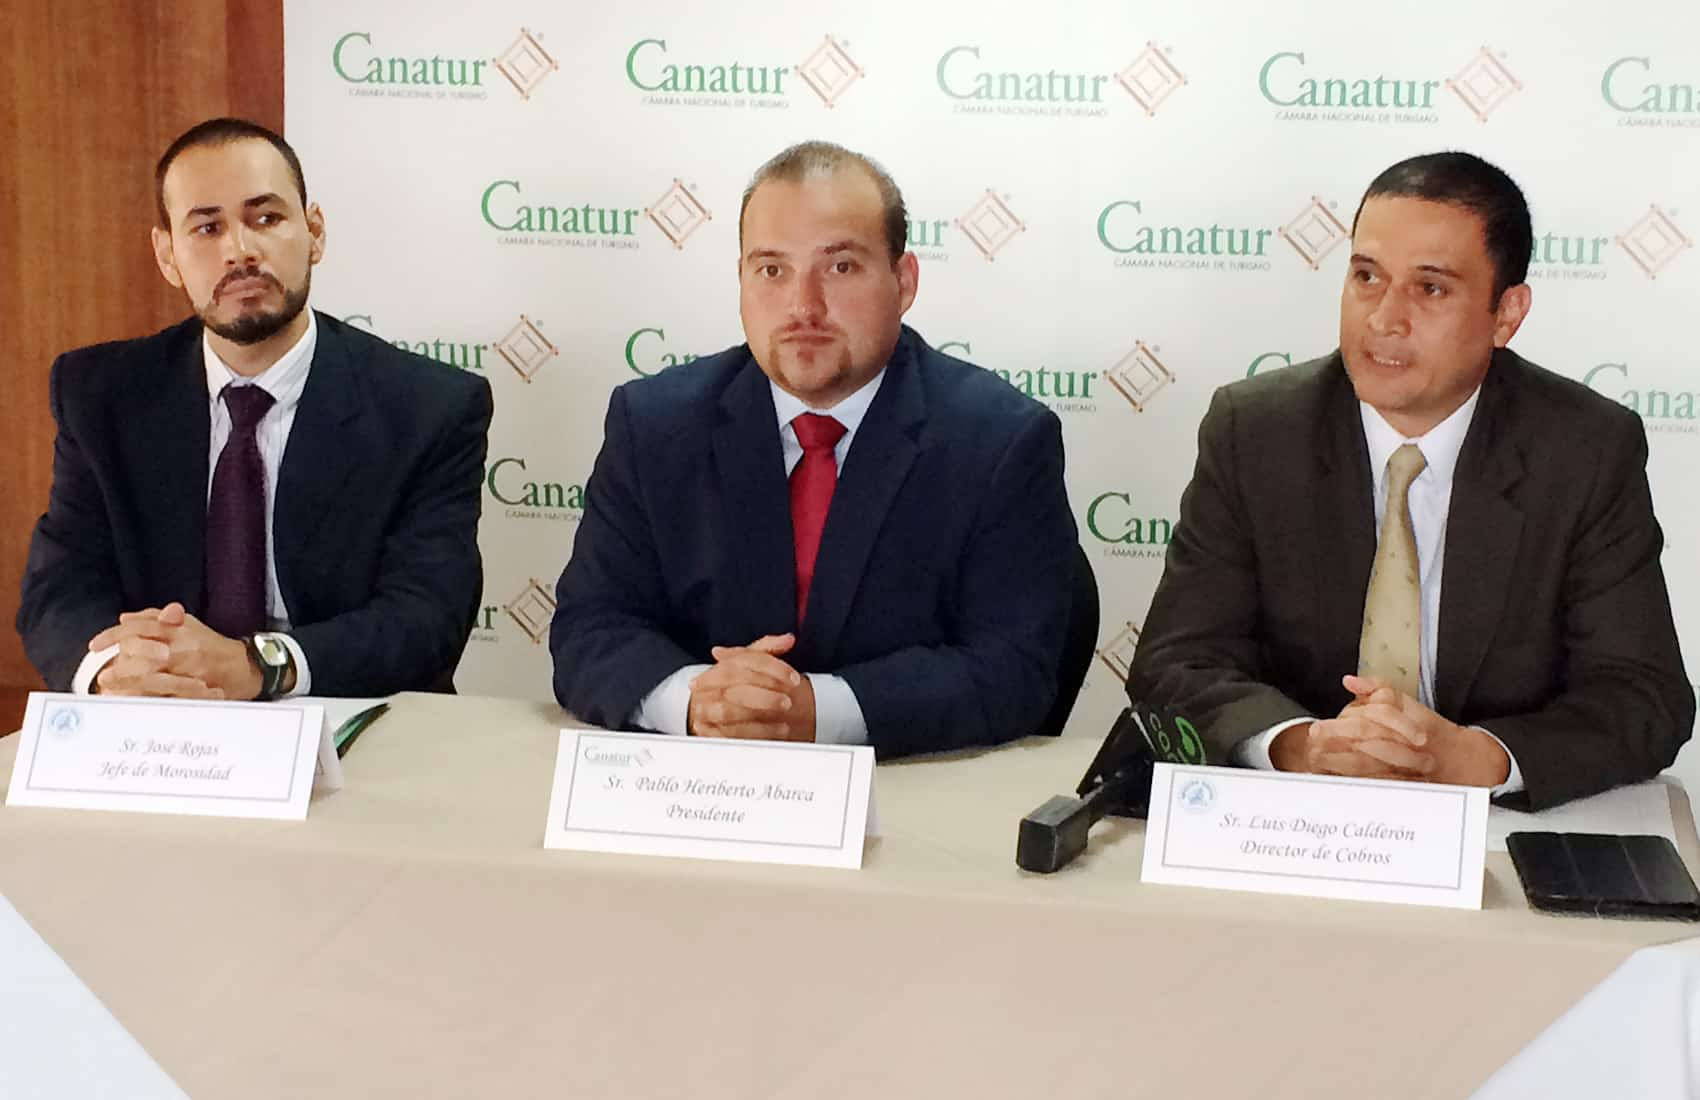 CANATUR - Caja agreement, May 2015